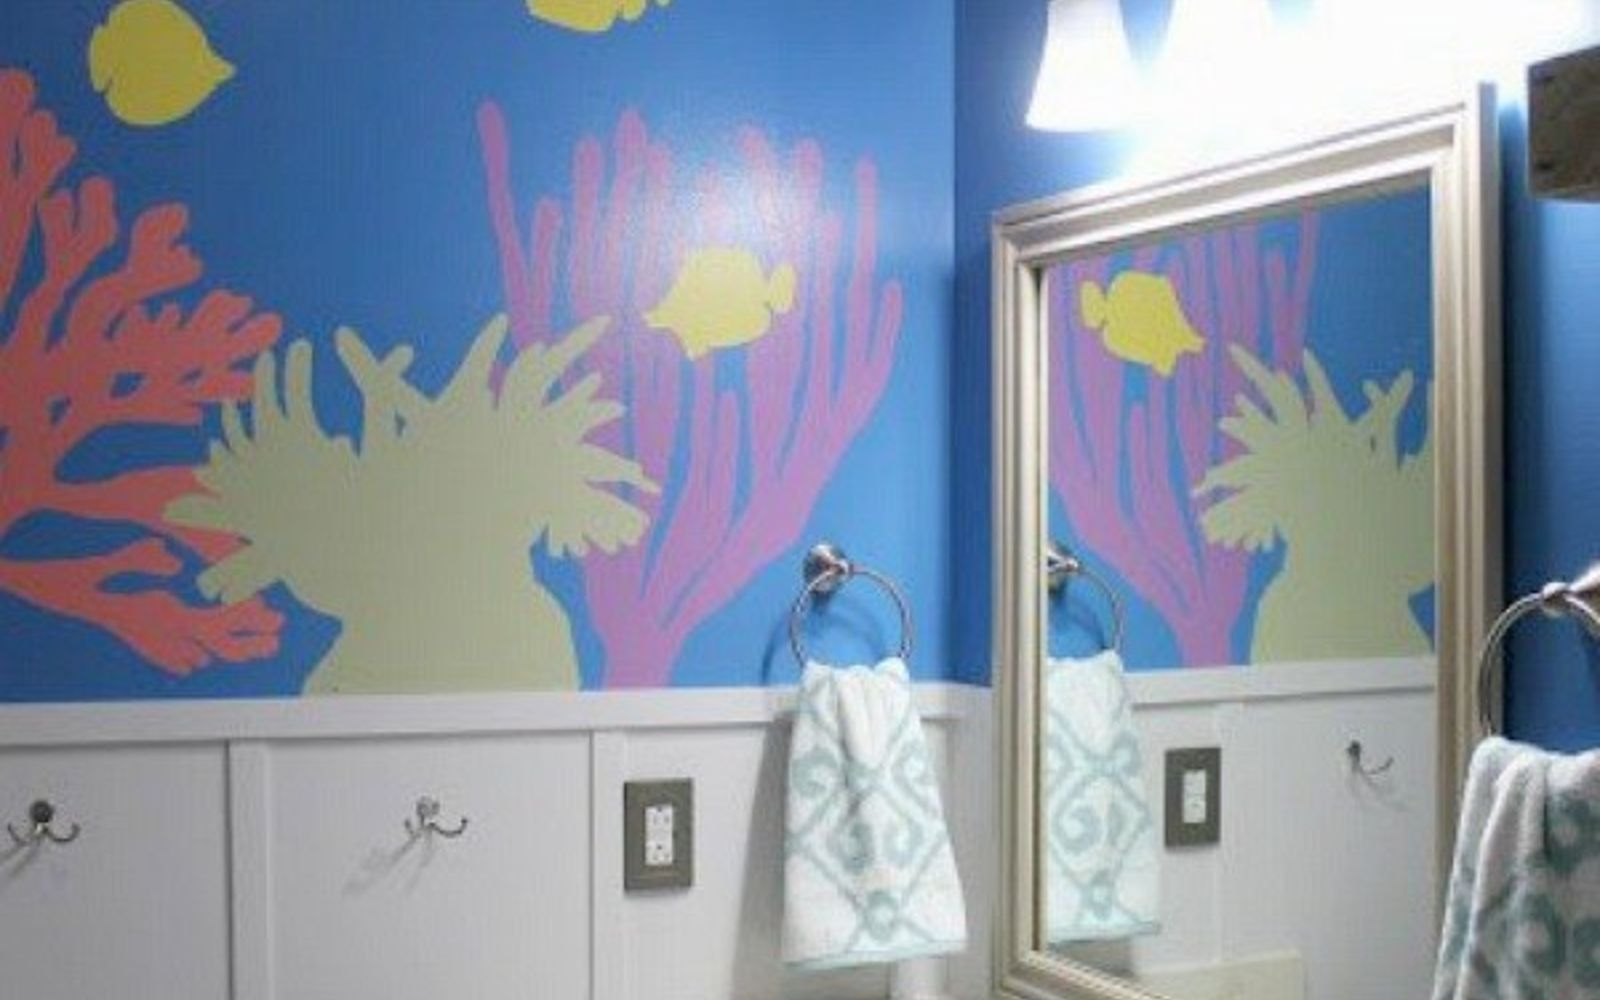 s 10 awesome paint colors to try in 2016, bedroom ideas, home decor, paint colors, Cobalt Blue Olympic One